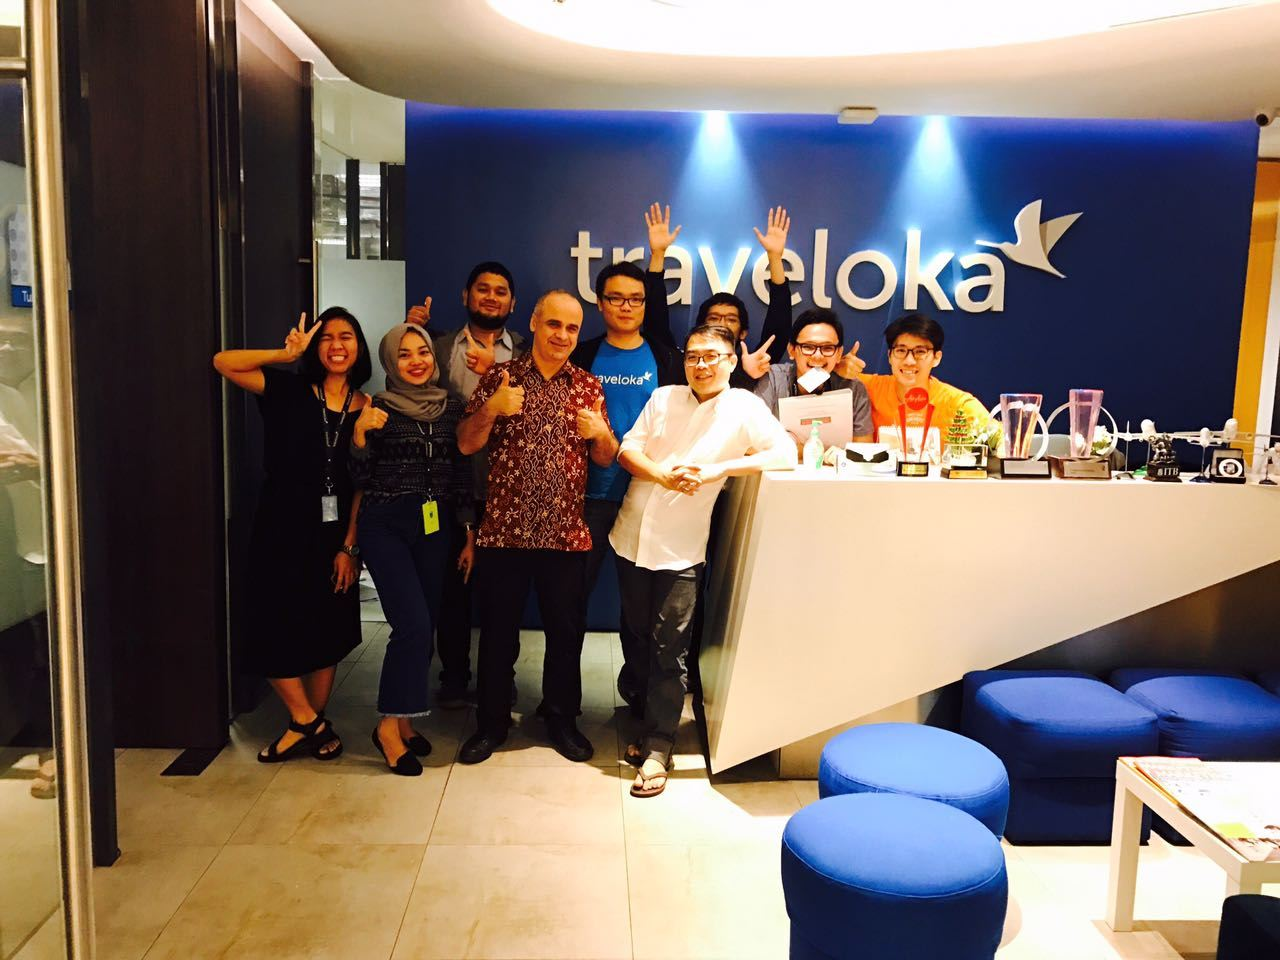 Travel Booking Company Traveloka Invests in Its Staff with Business English-Language Courses